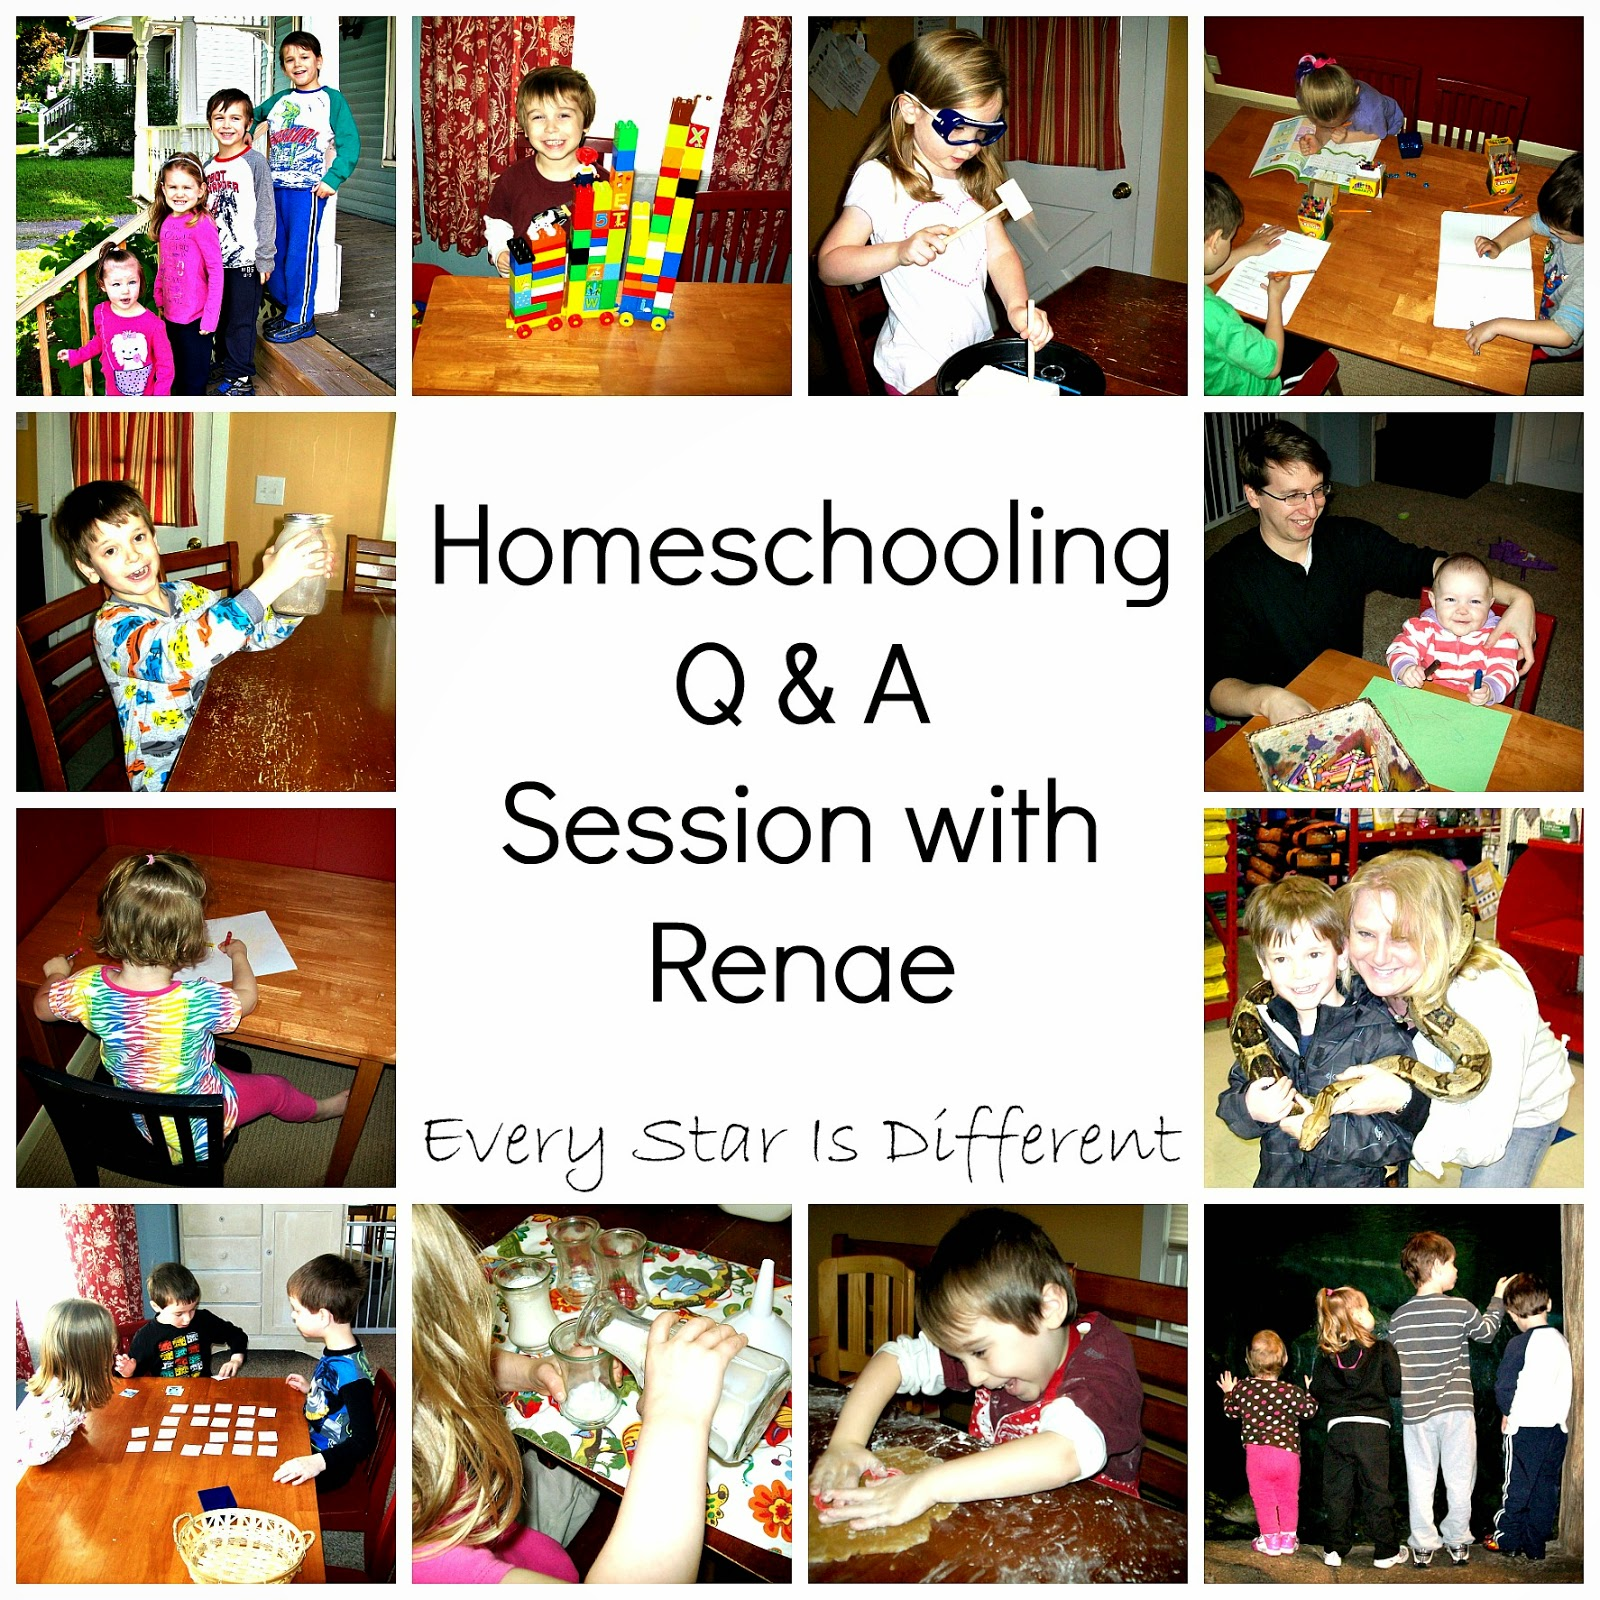 Homeschooling Question and Answer Session with Renae